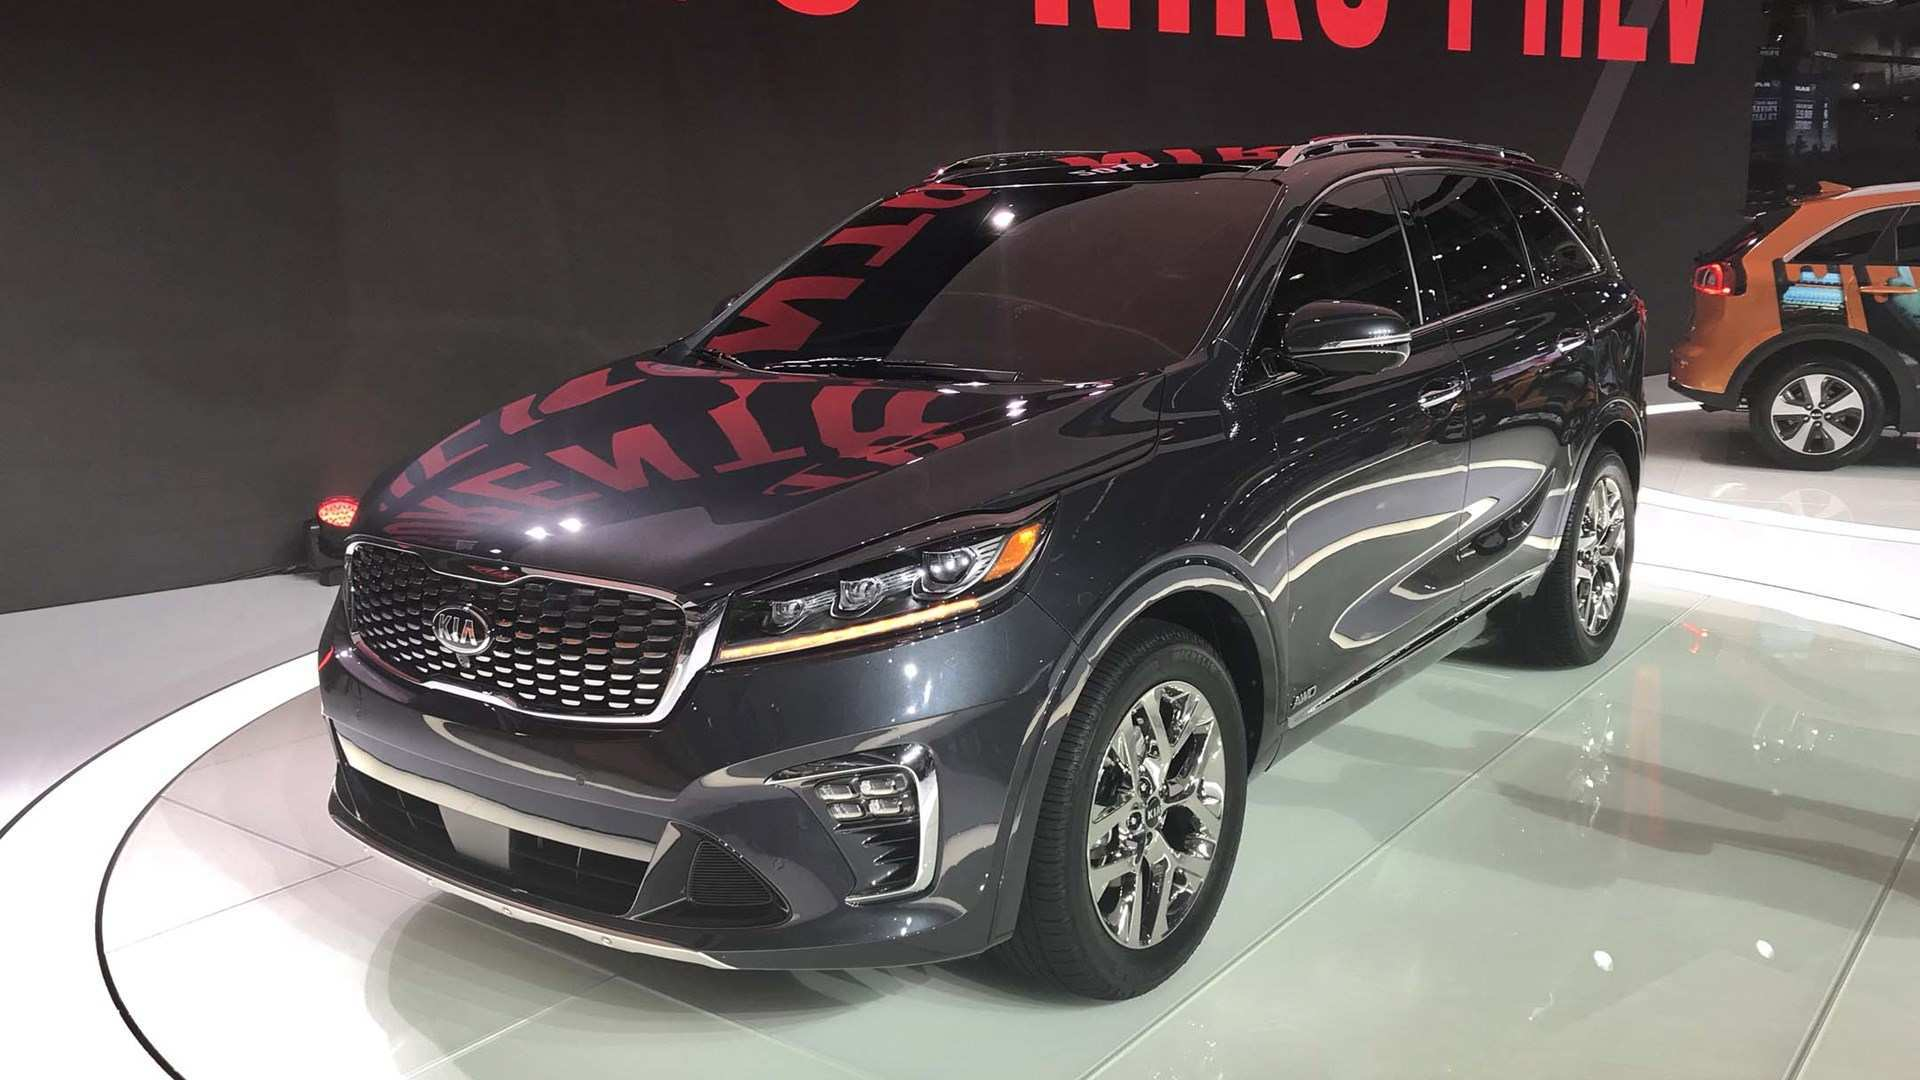 66 Great 2019 Kia Sorento Price Exterior for 2019 Kia Sorento Price